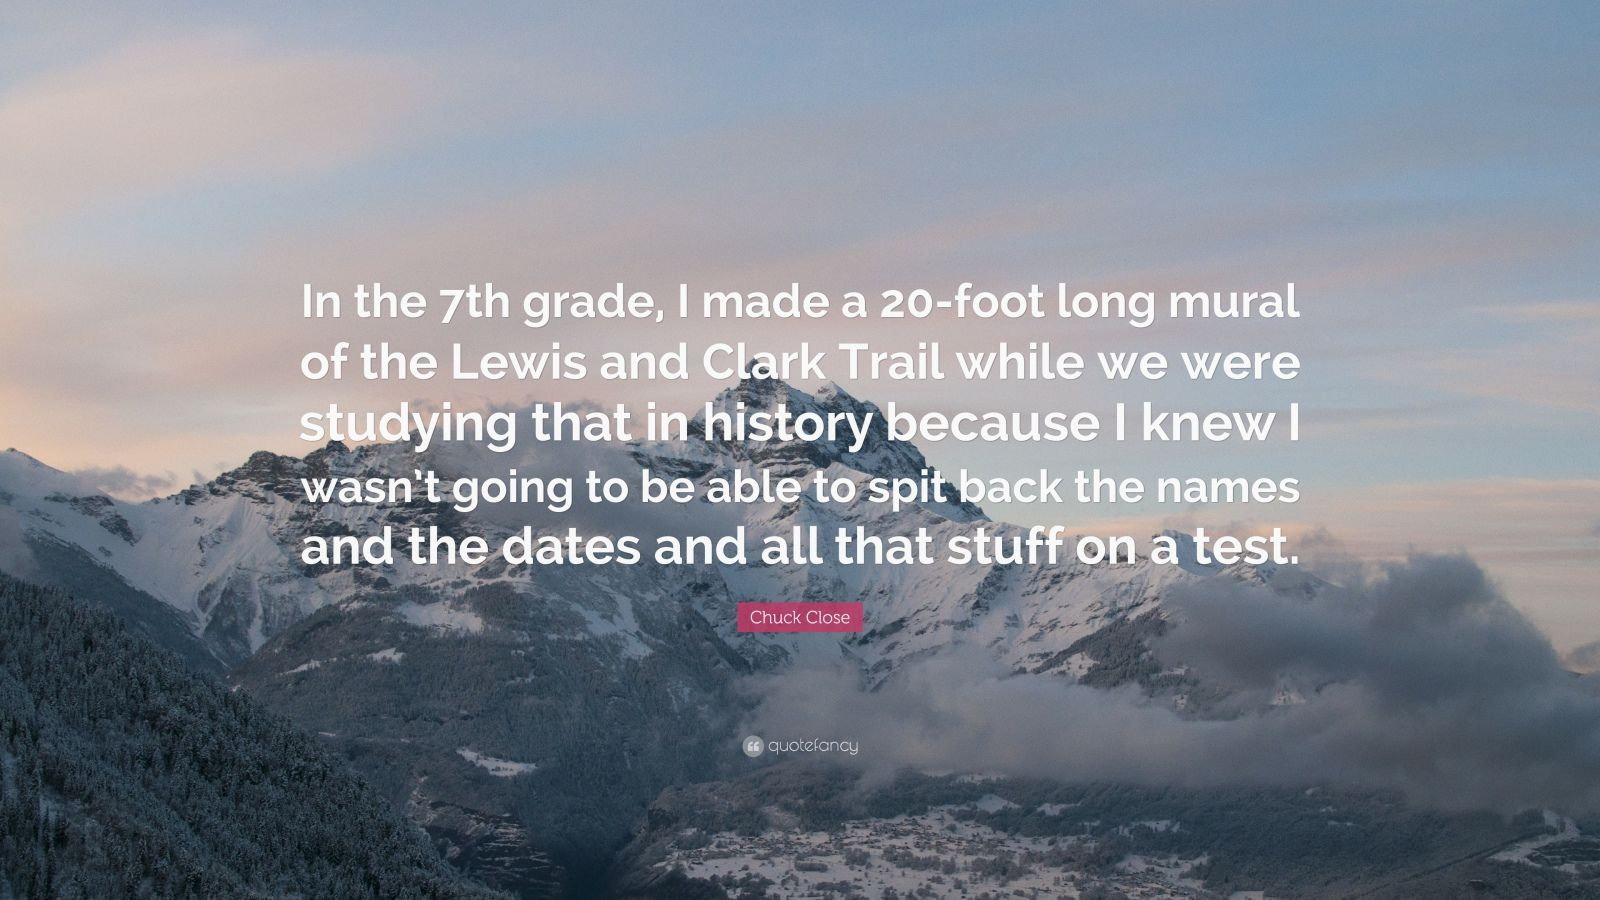 "Chuck Close Quote: ""In the 7th grade, I made a 20-foot long mural of the Lewis and Clark Trail while we were studying that in history because I knew I wasn't going to be able to spit back the names and the dates and all that stuff on a test."""